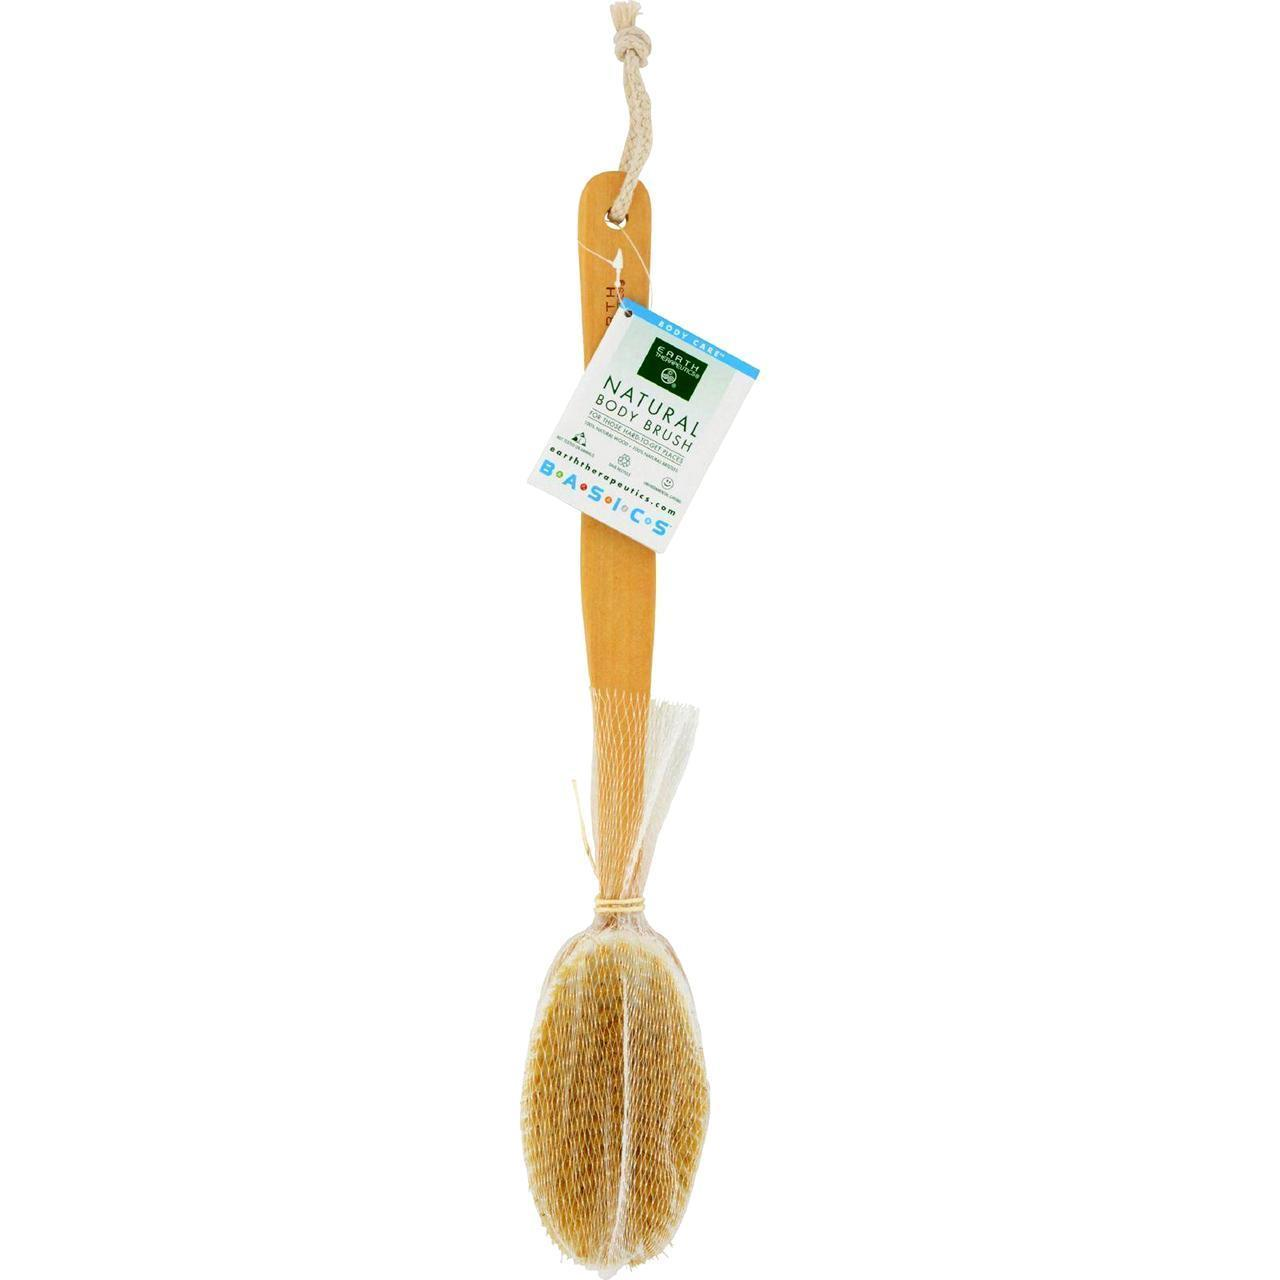 Earth Therapeutics Natural Body Brush - 1